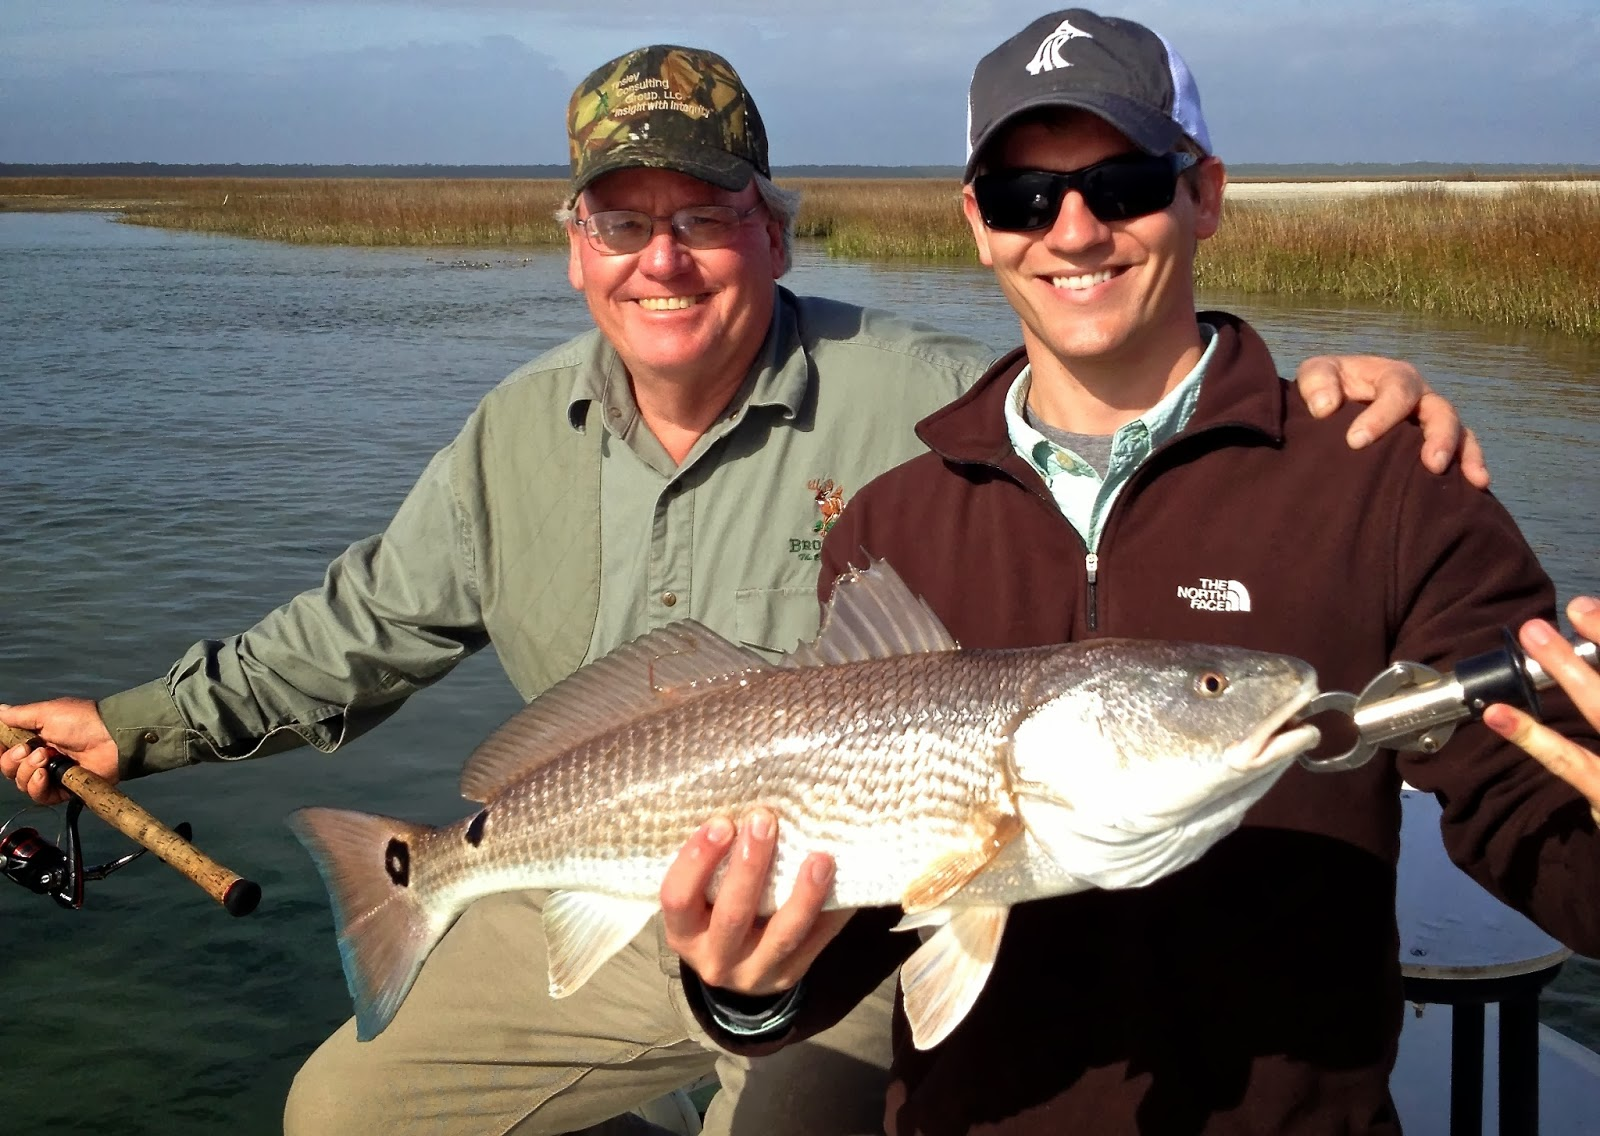 Myrtle beach fishing report cold weather hot redfish bite for Fishing report myrtle beach